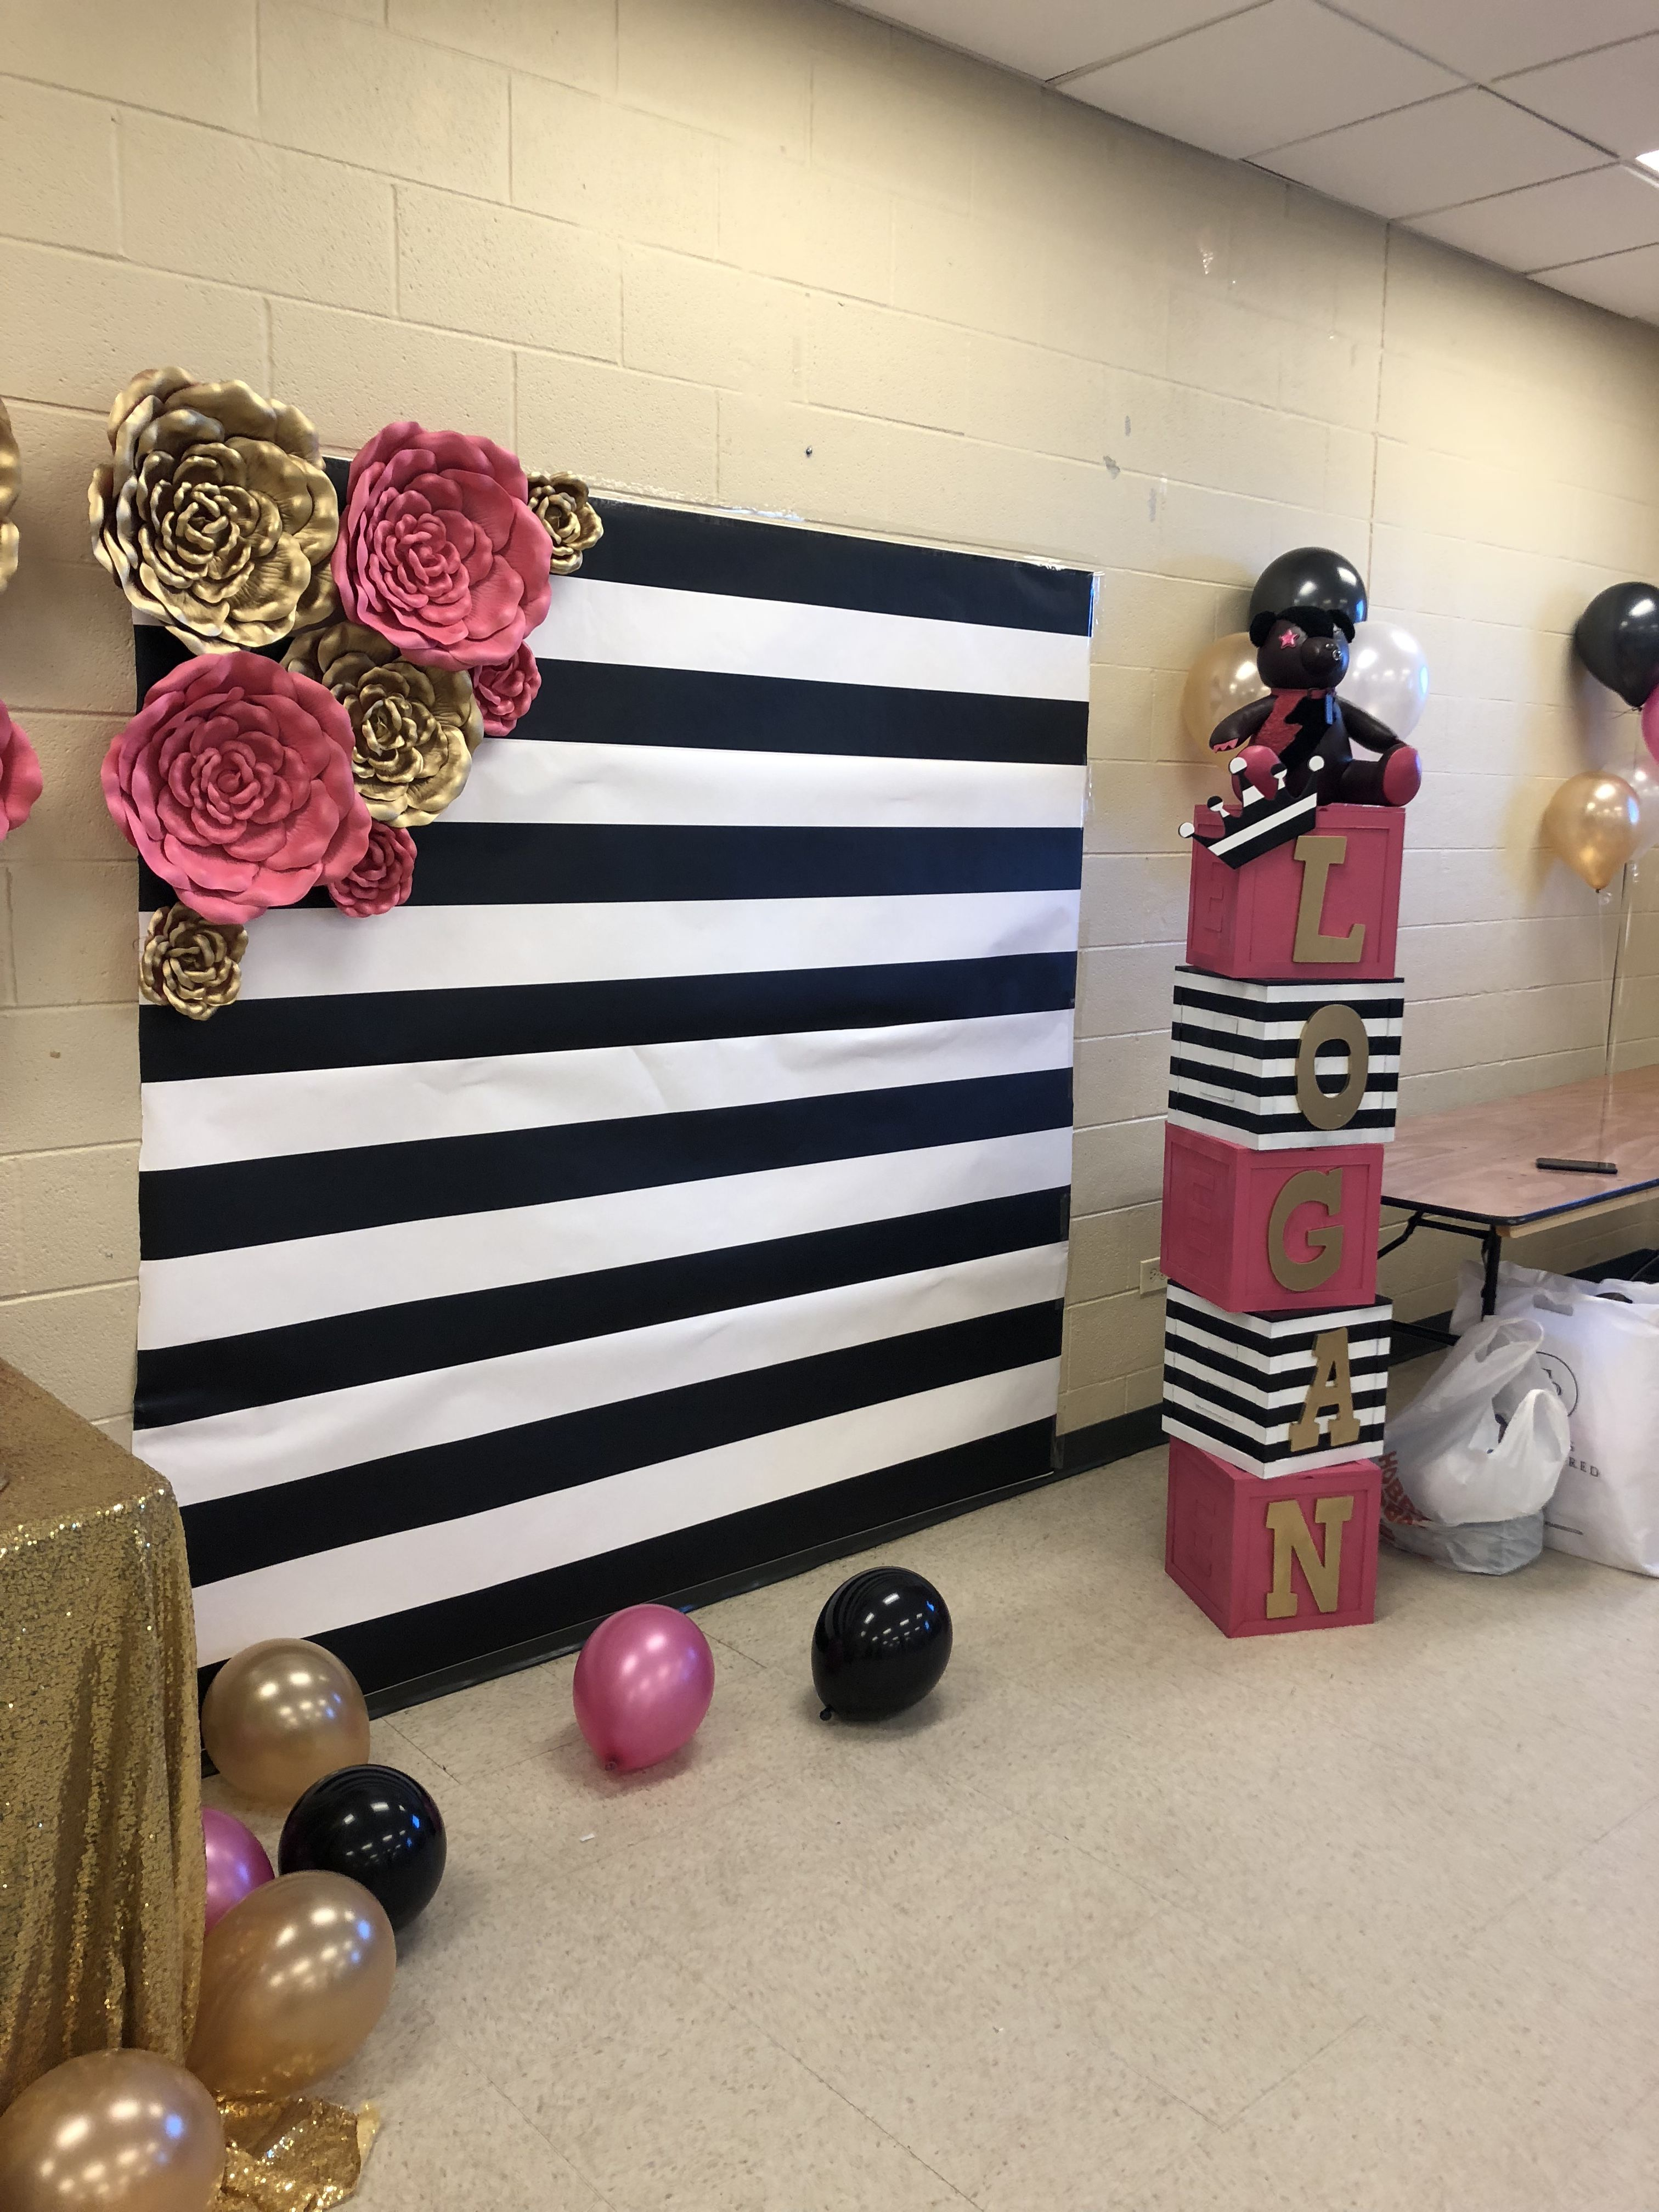 Black And White Stripes Backdrop Kate Spade Pink Gold Flowers